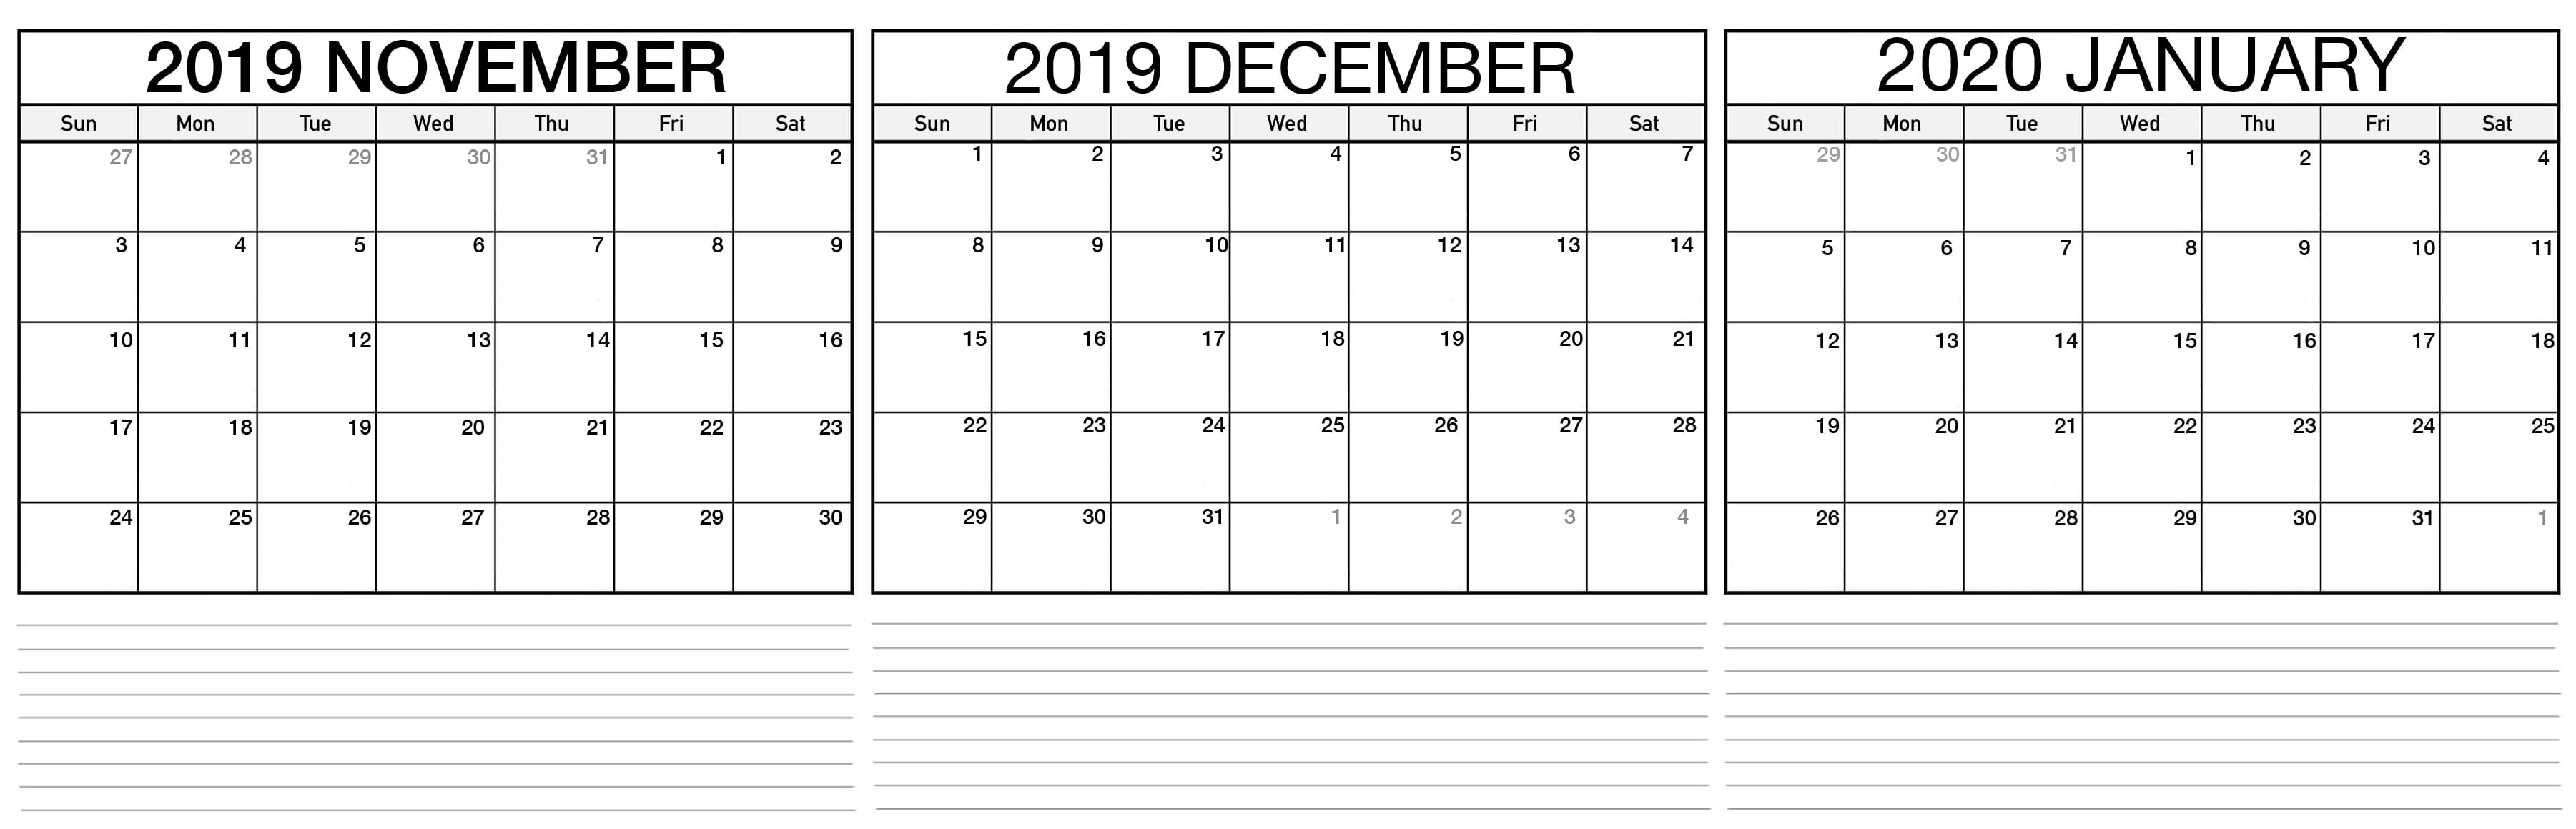 November 2019 To January 2020 Calendar Template  2019 with Two Month Calendar November December 2020